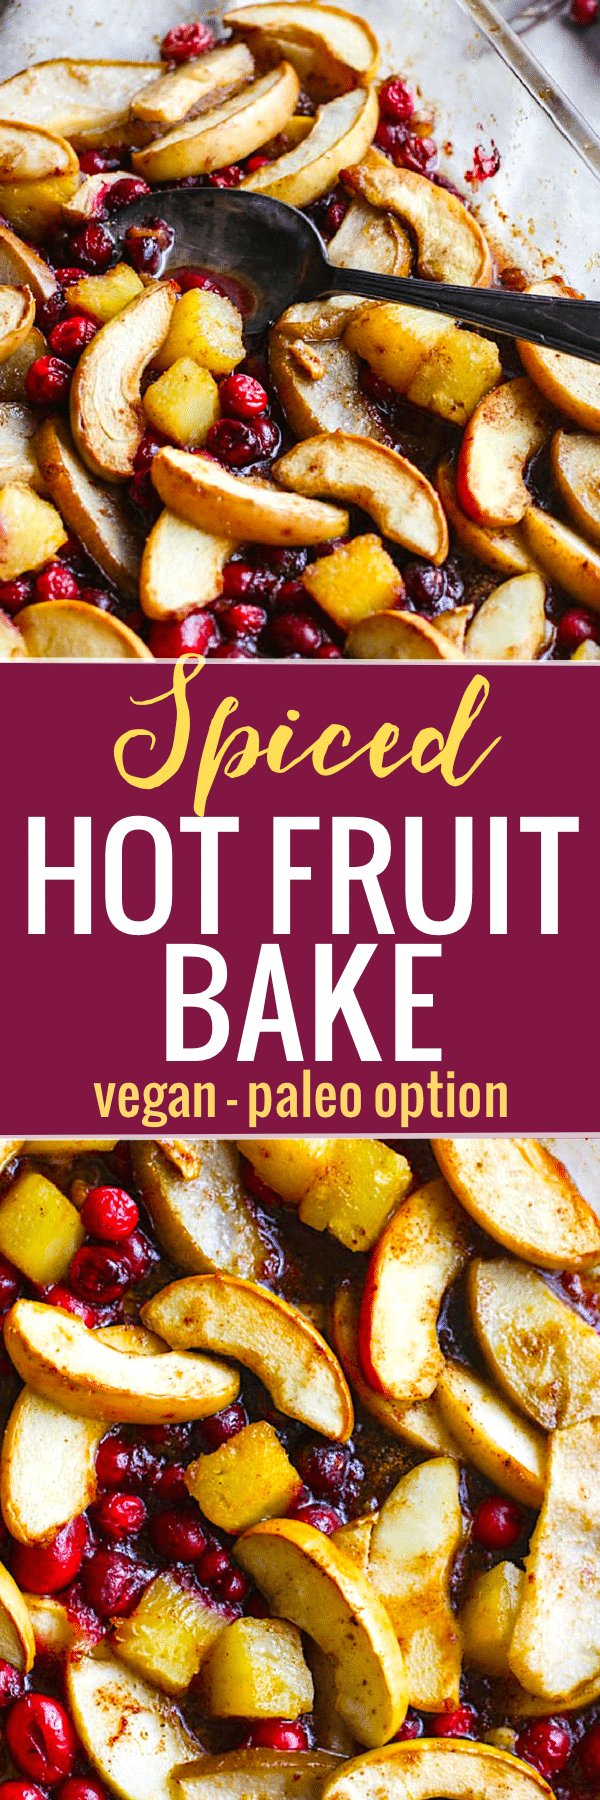 Spiced Hot Fruit Bake is a delicious and healthy holiday breakfast! This gluten free spiced hot fruit bake also makes for a great topping for waffles, pancakes, or simply by itself!